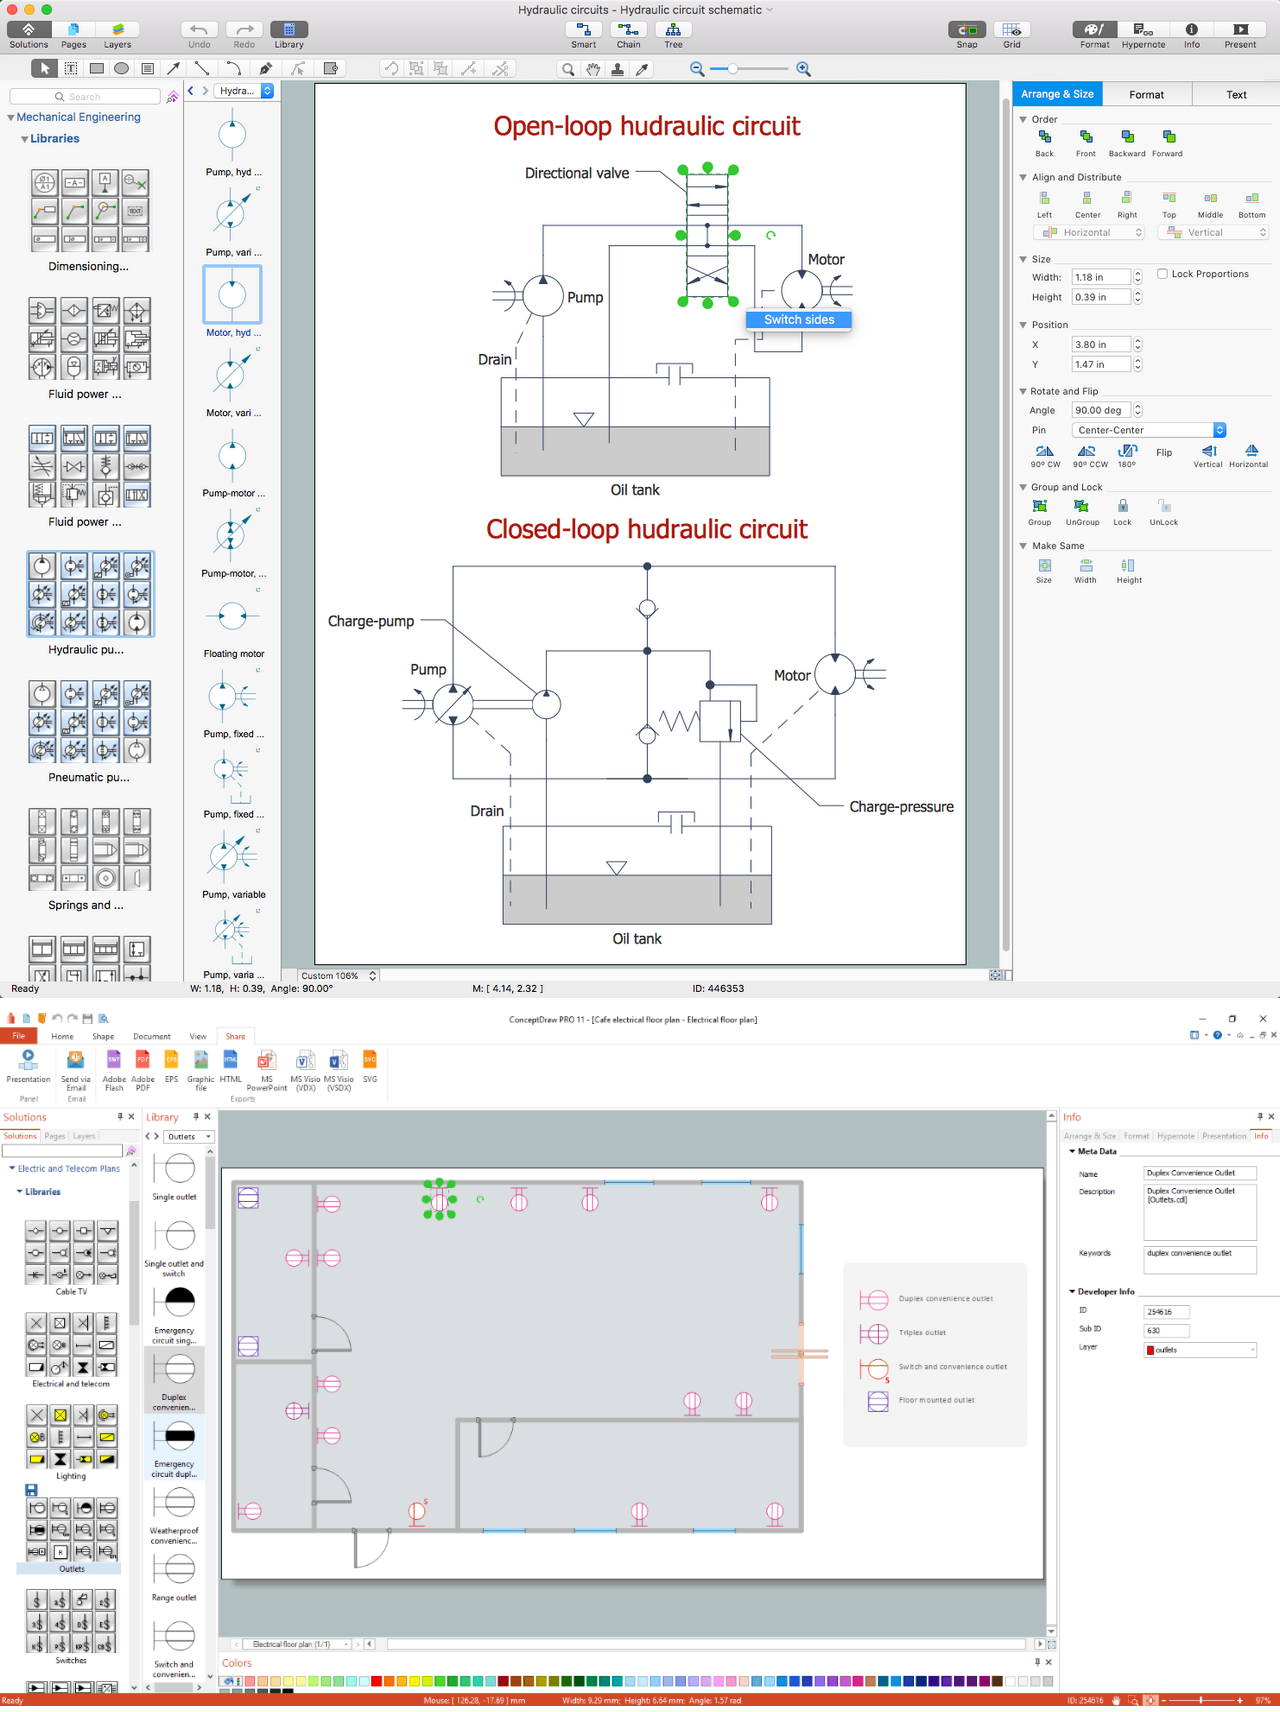 electrical diagram software create an electrical diagram easily rh conceptdraw com Basic Electrical Wiring Diagrams Automotive Wiring Diagram Software